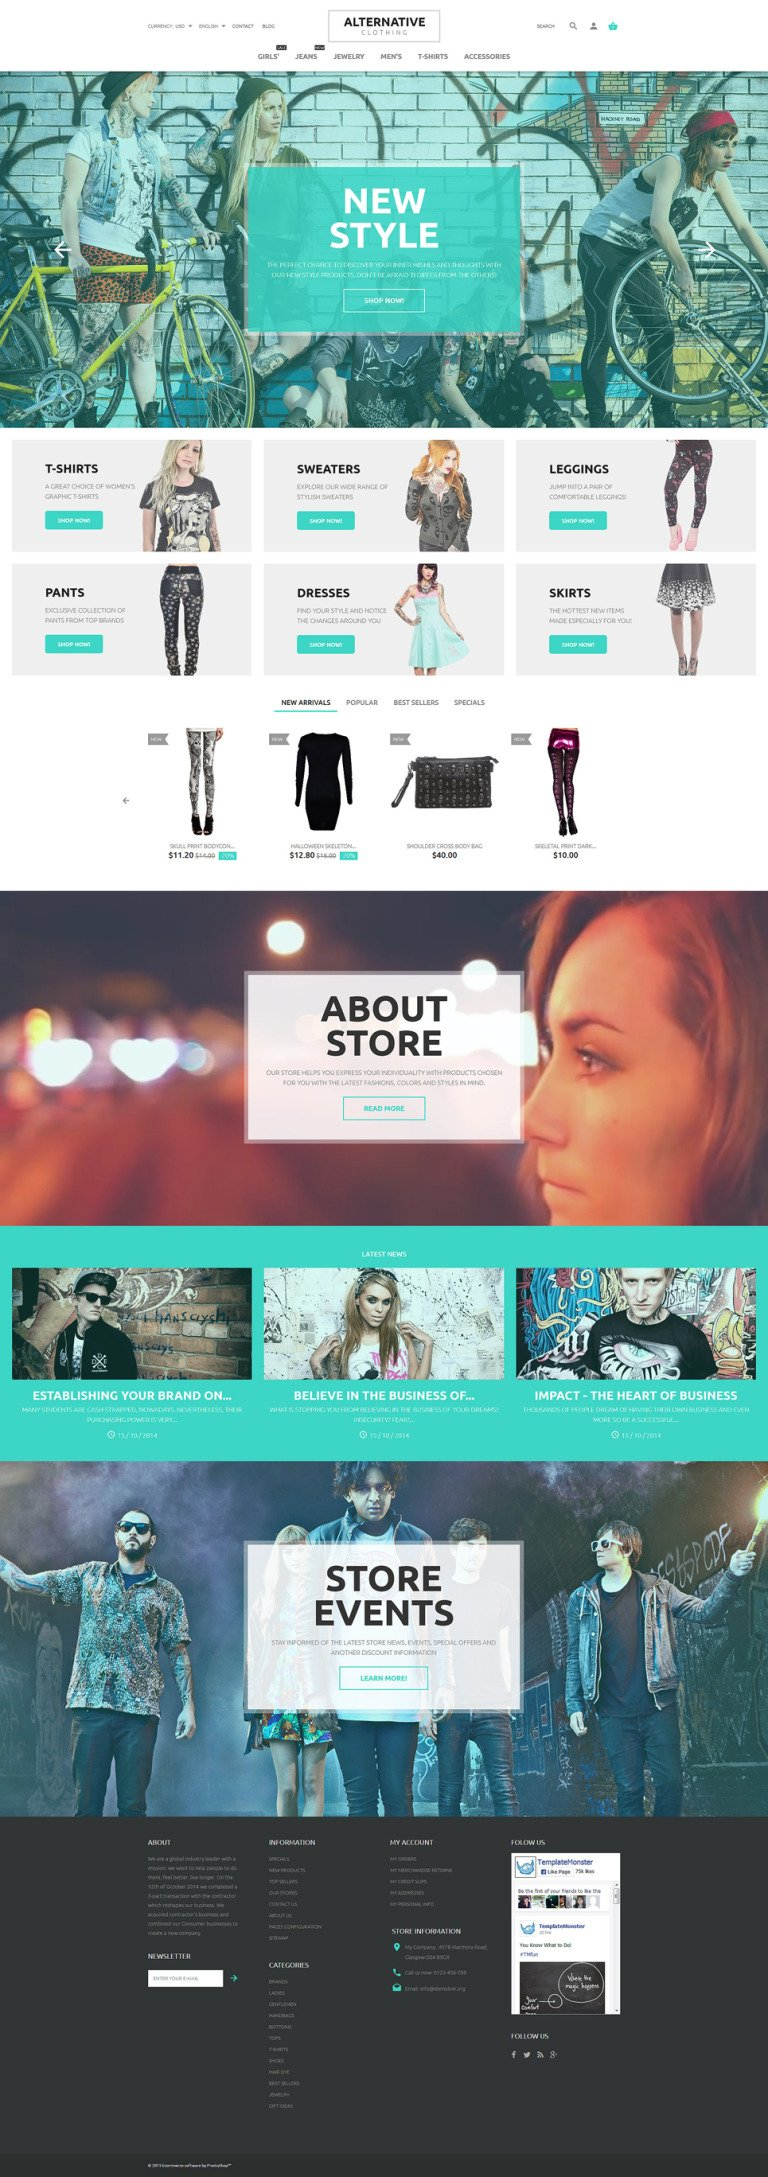 Alternative Style PrestaShop Theme New Screenshots BIG